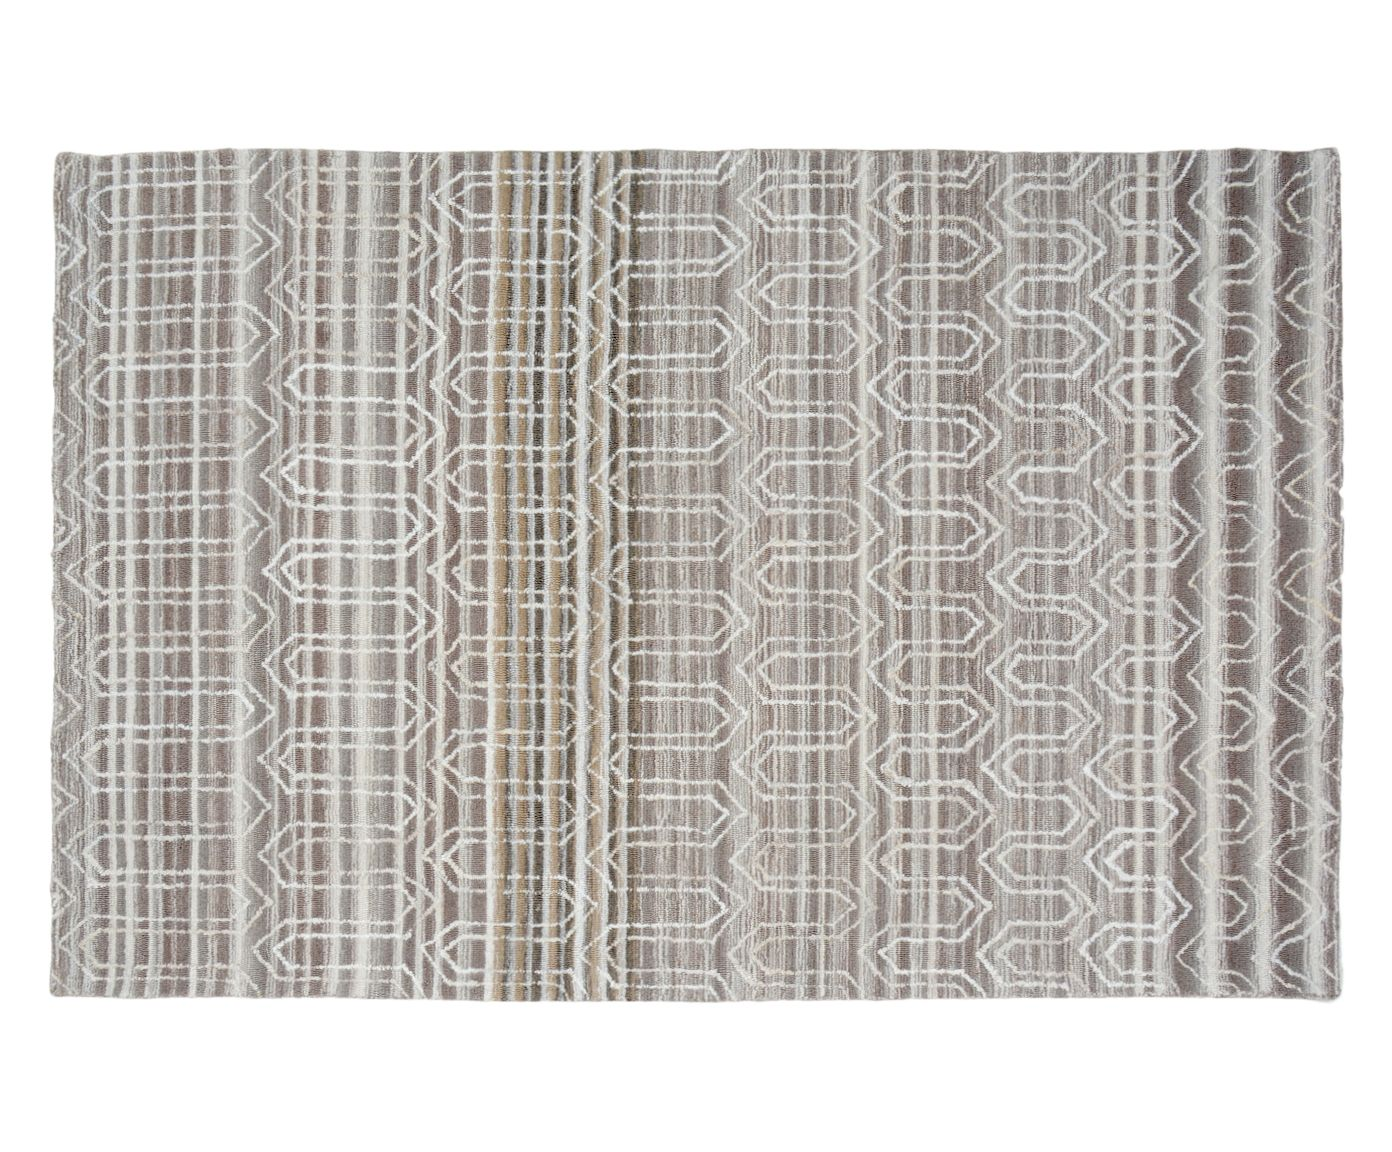 Tapete Artesanal Indiano Ravi - 152X242cm | Westwing.com.br